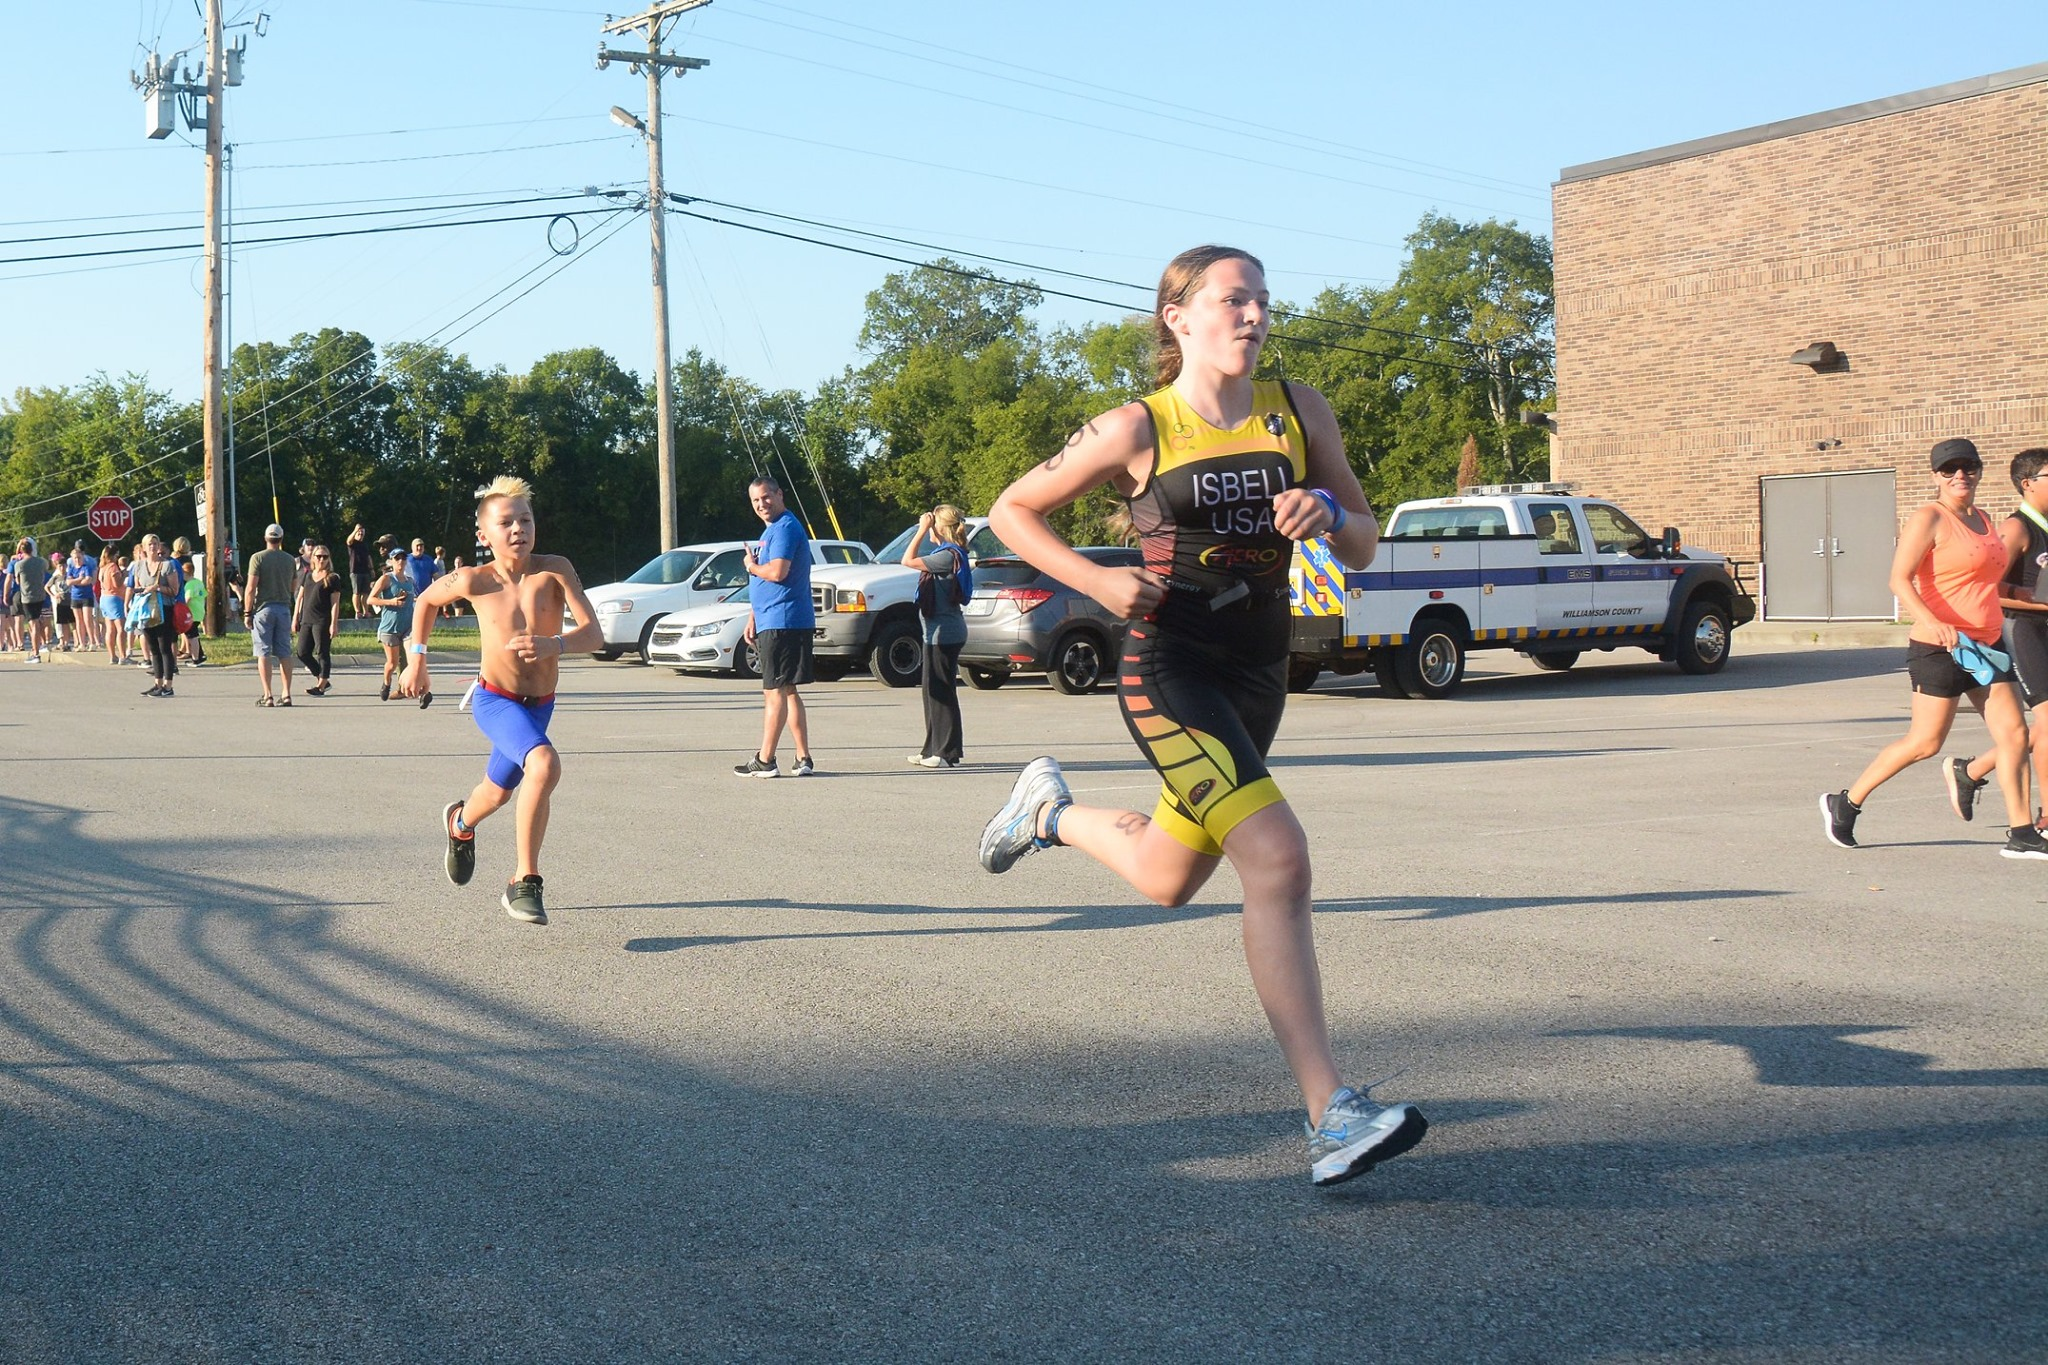 Nolensville Kids Triathlon draws 400 athletes